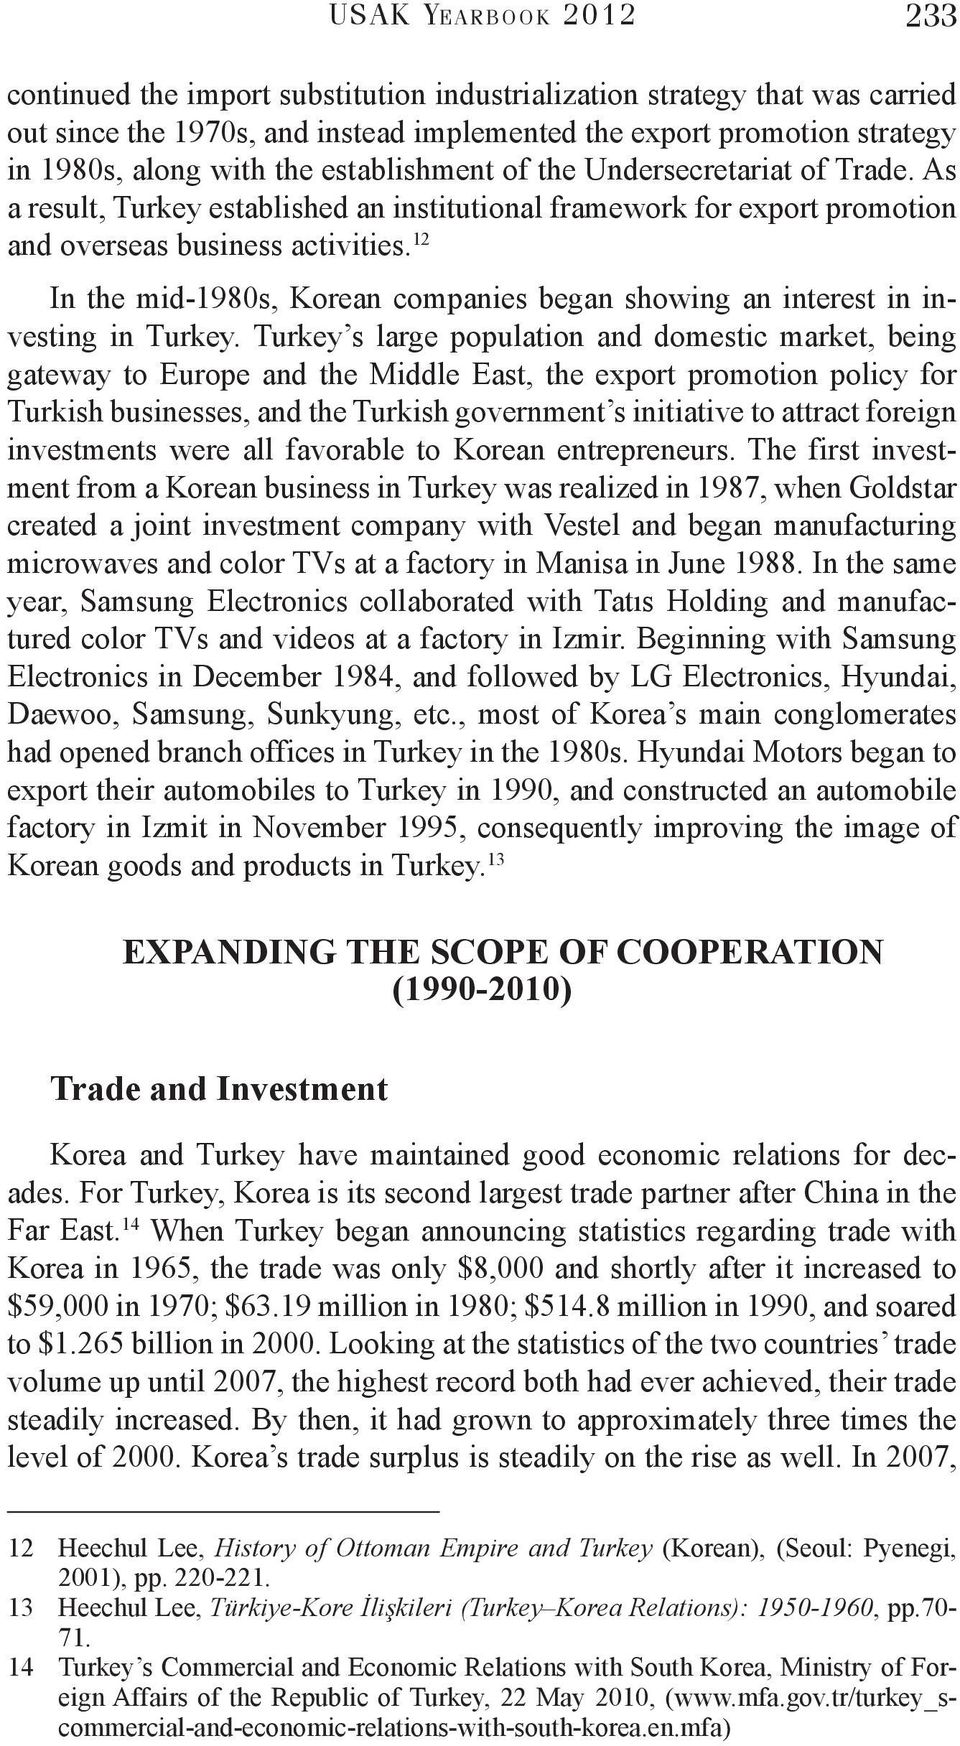 12 In the mid-1980s, Korean companies began showing an interest in investing in Turkey.